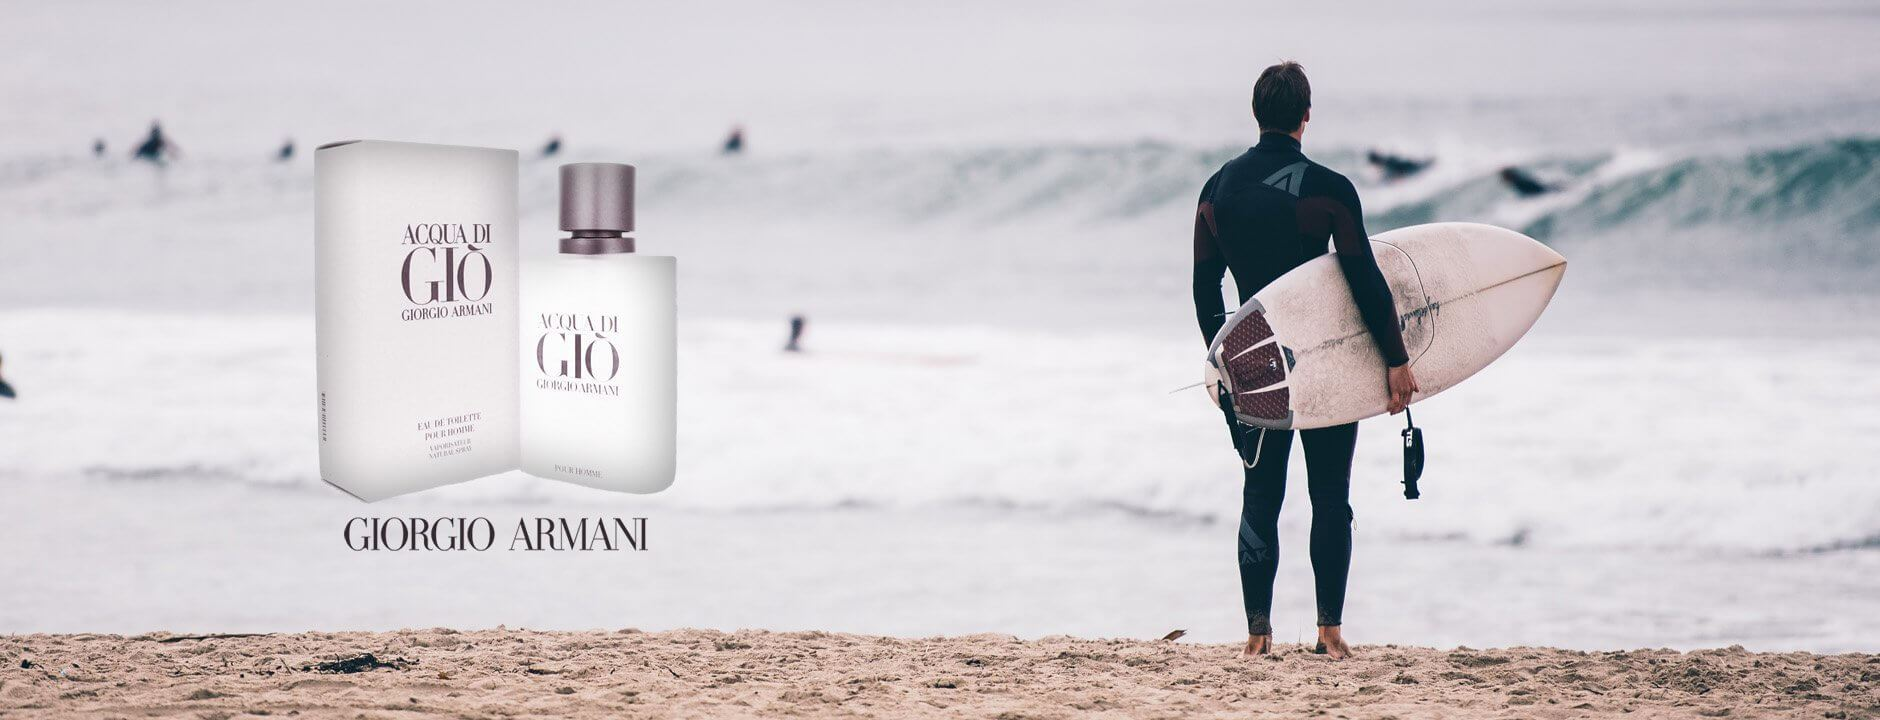 ACQUA DI GIO by Giorgio Armani for Men